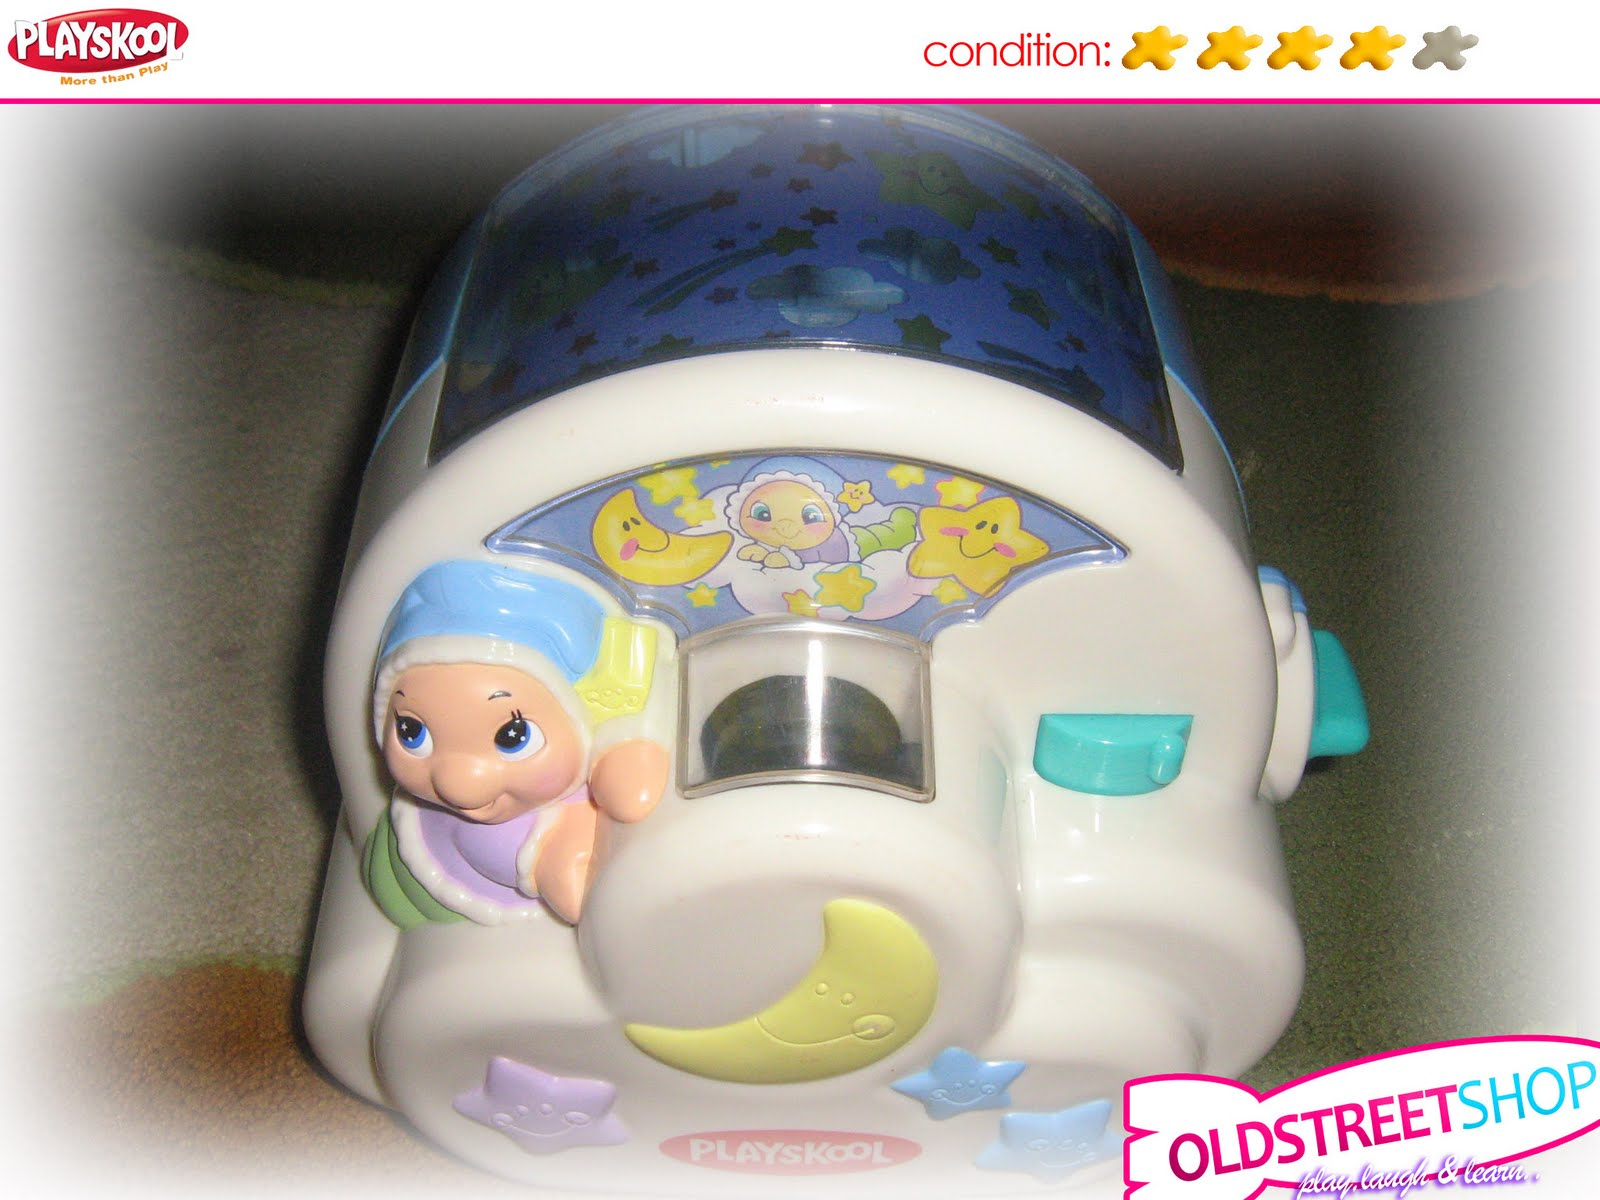 Playskool Musical Toys : Oldstreetshop playskool musical gloworm moonbeam